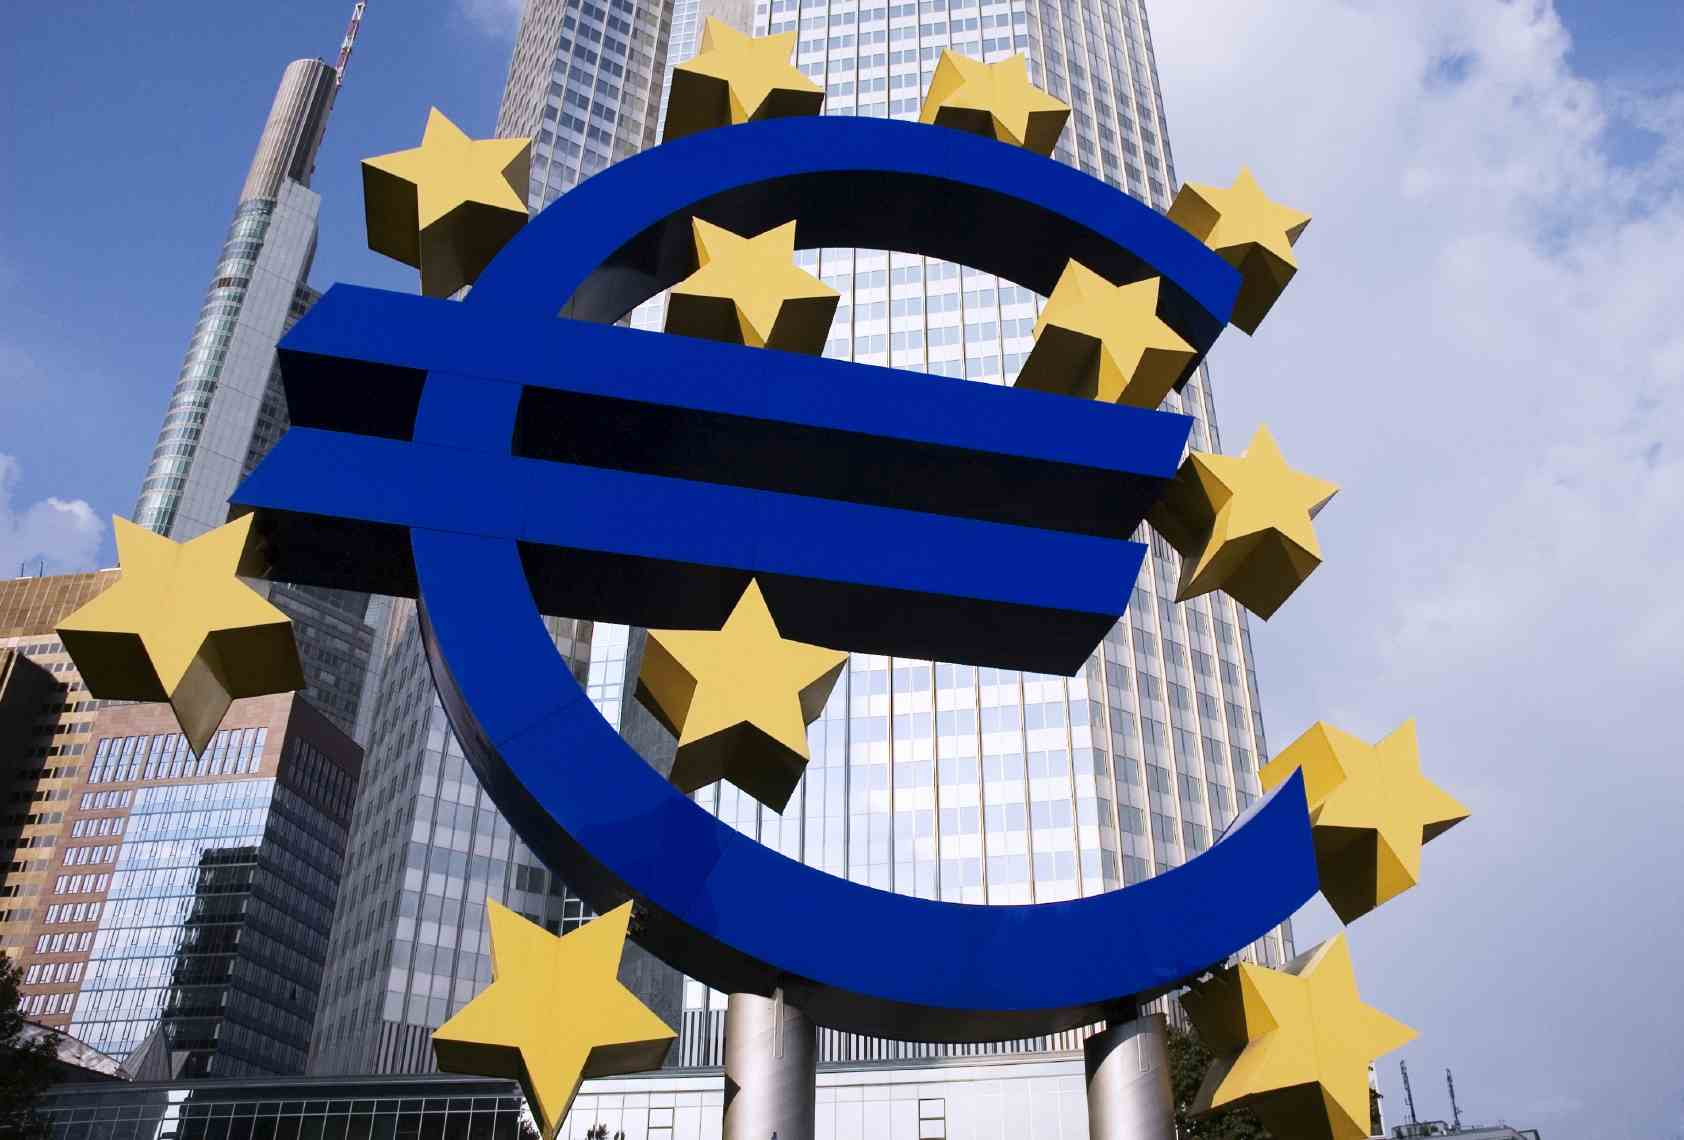 153 million euros from IPA funds have not been used